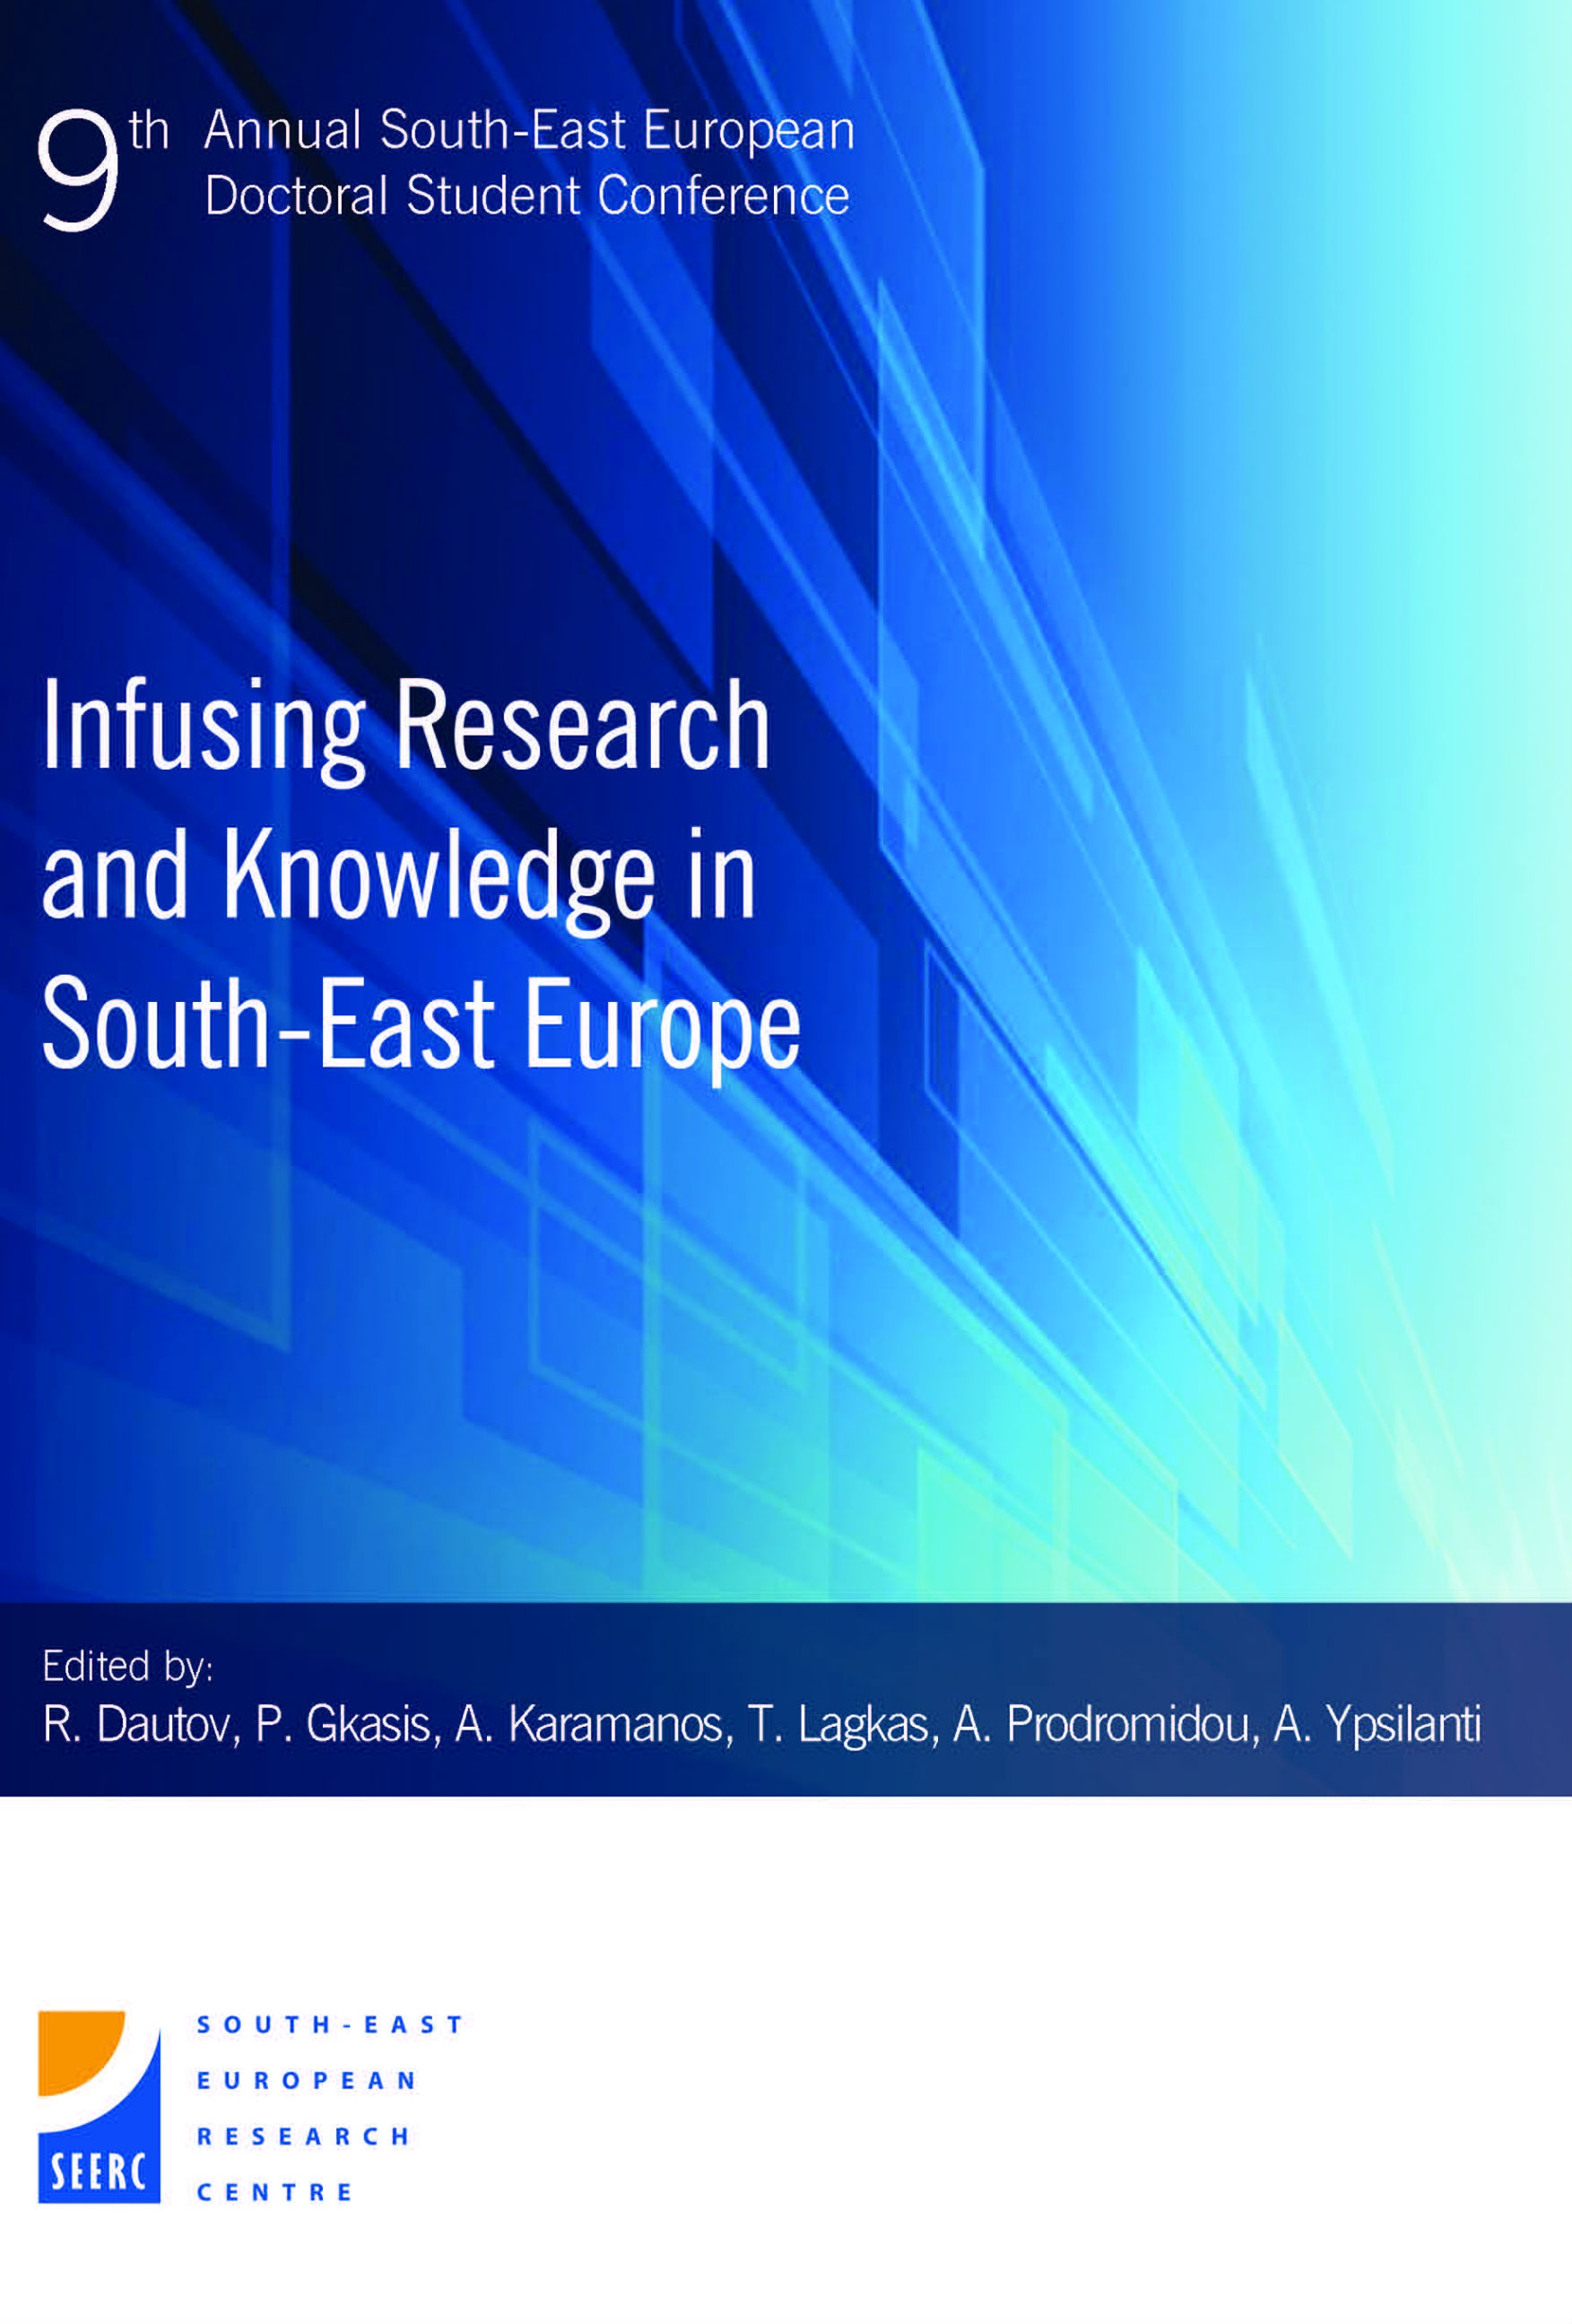 Proceedings of the 9th Annual South-East European Doctoral Student Conference: Infusing Research and Knowledge in South-East Europe